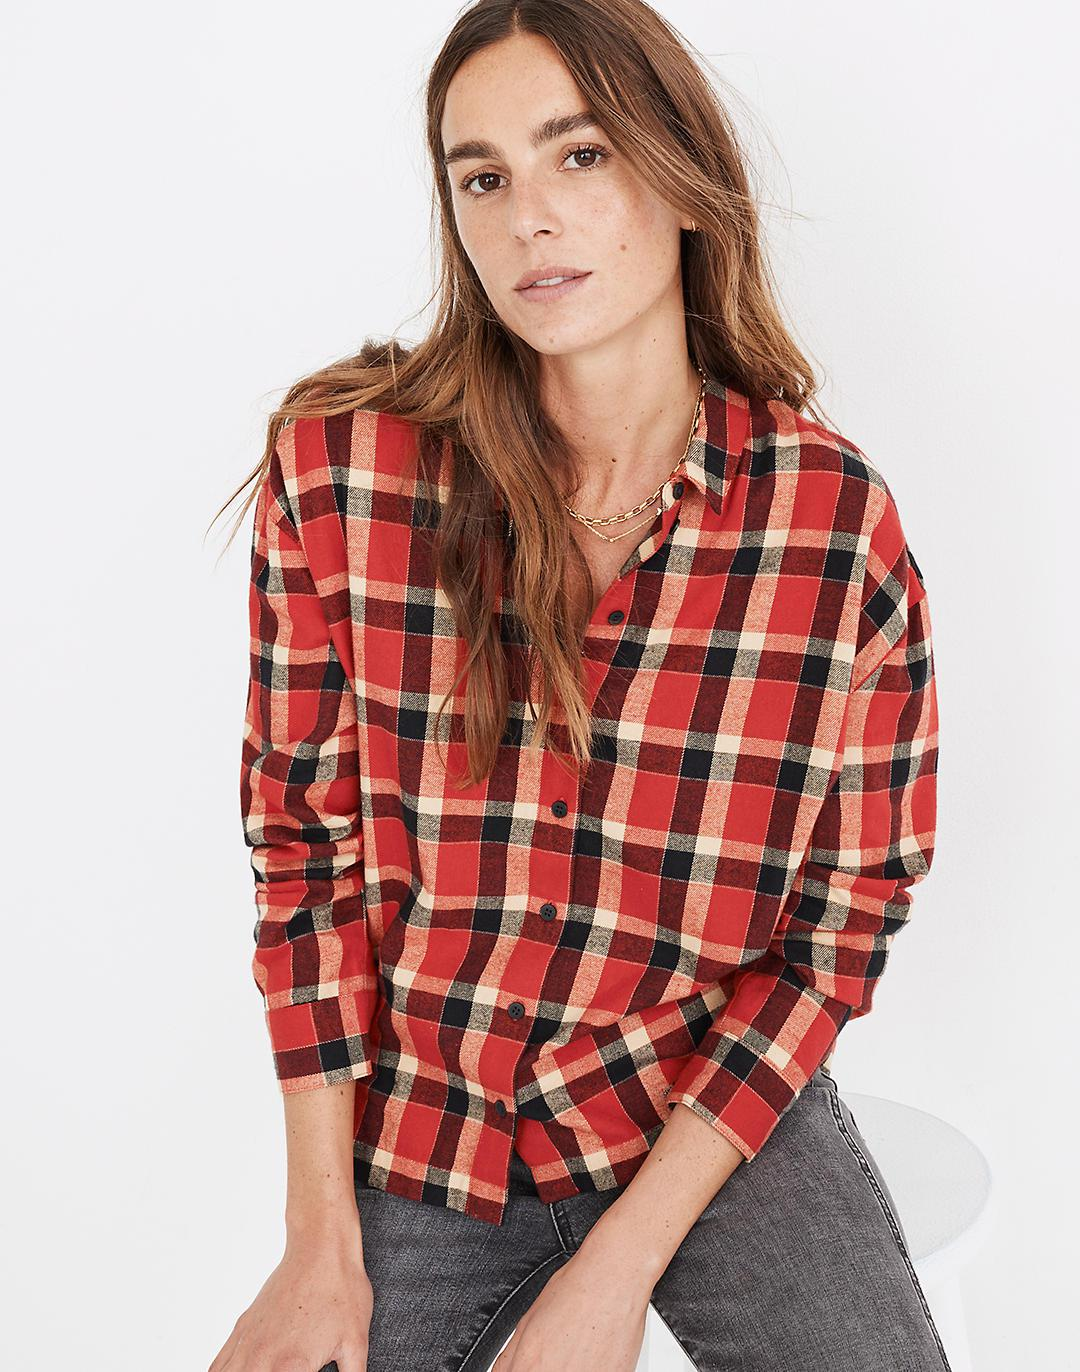 Flannel Westlake Shirt in Newfield Plaid